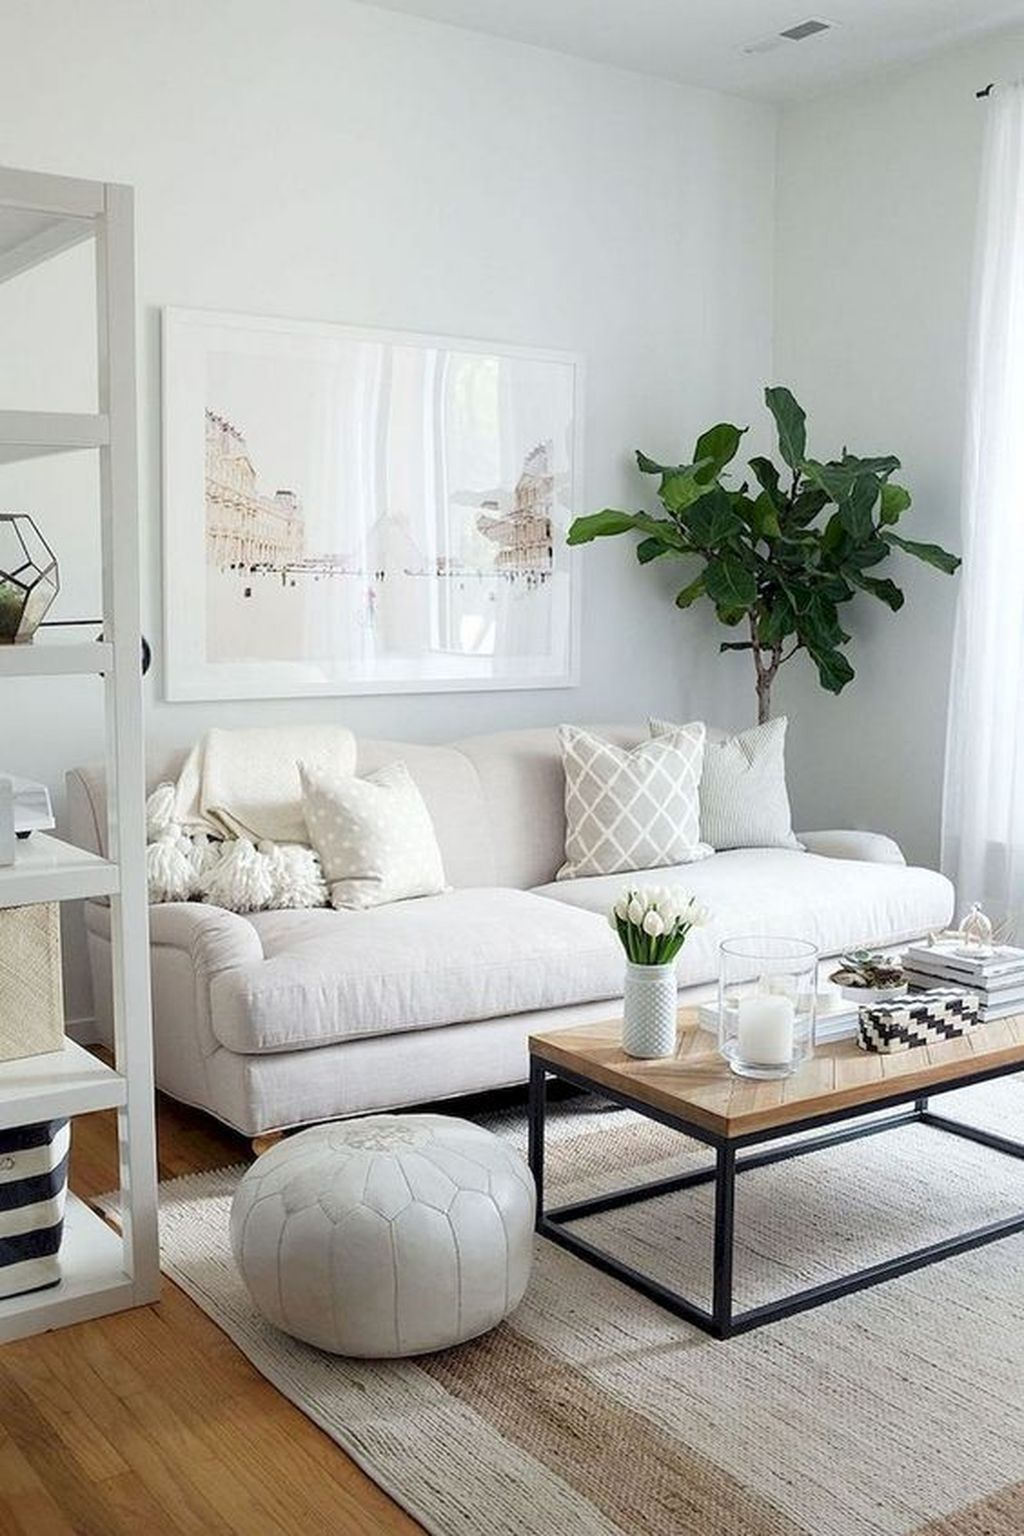 48 inspiring modern living room decorations ideas to on amazing inspiring modern living room ideas for your home id=65206